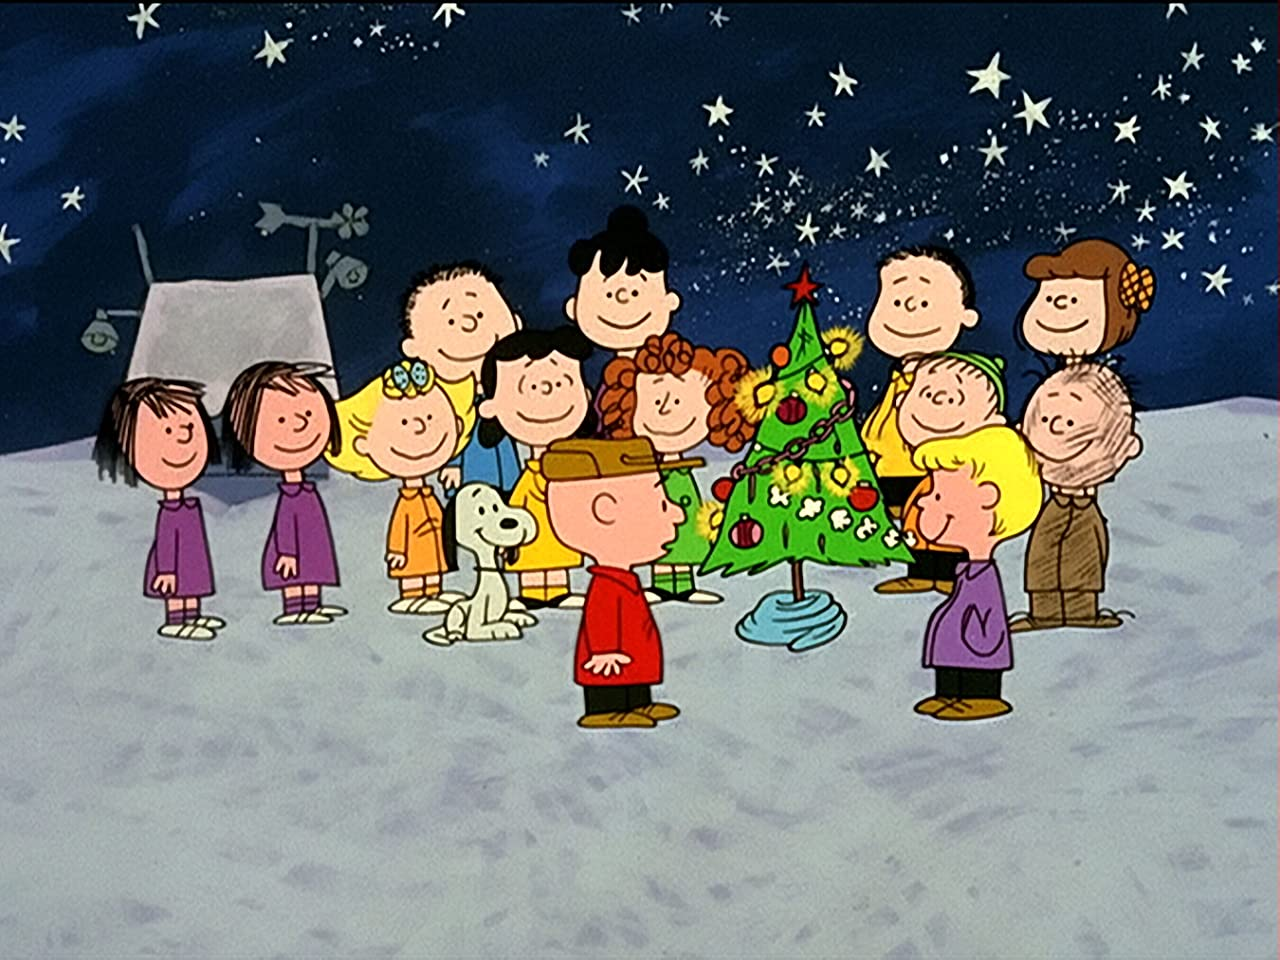 Charlie Brown, Snoopy and friends stand around a Christmas tree in A Charlie Brown movie.